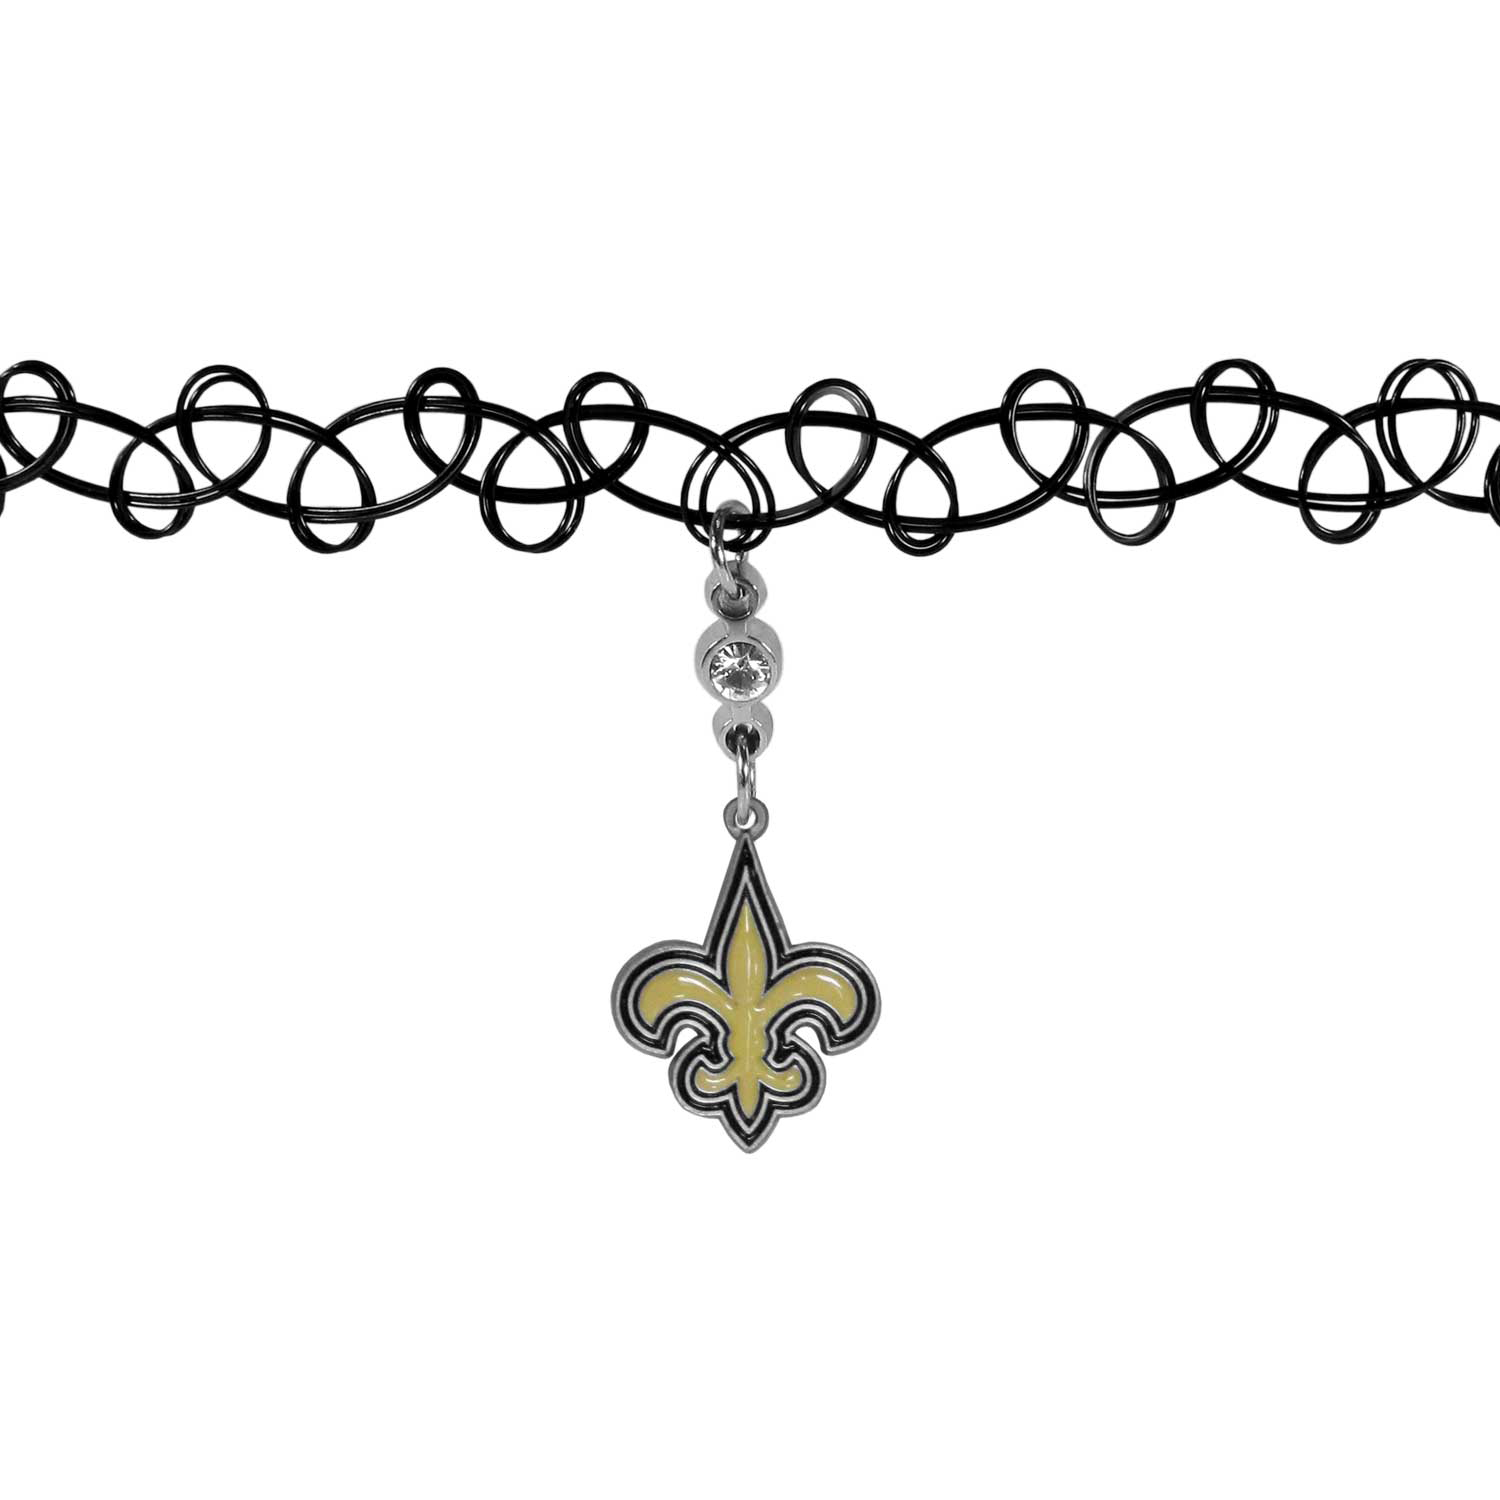 New Orleans Saints Knotted Choker - This retro, knotted choker is a cool and unique piece of fan jewelry. The tattoo style choker features a high polish New Orleans Saints charm with rhinestone accents.